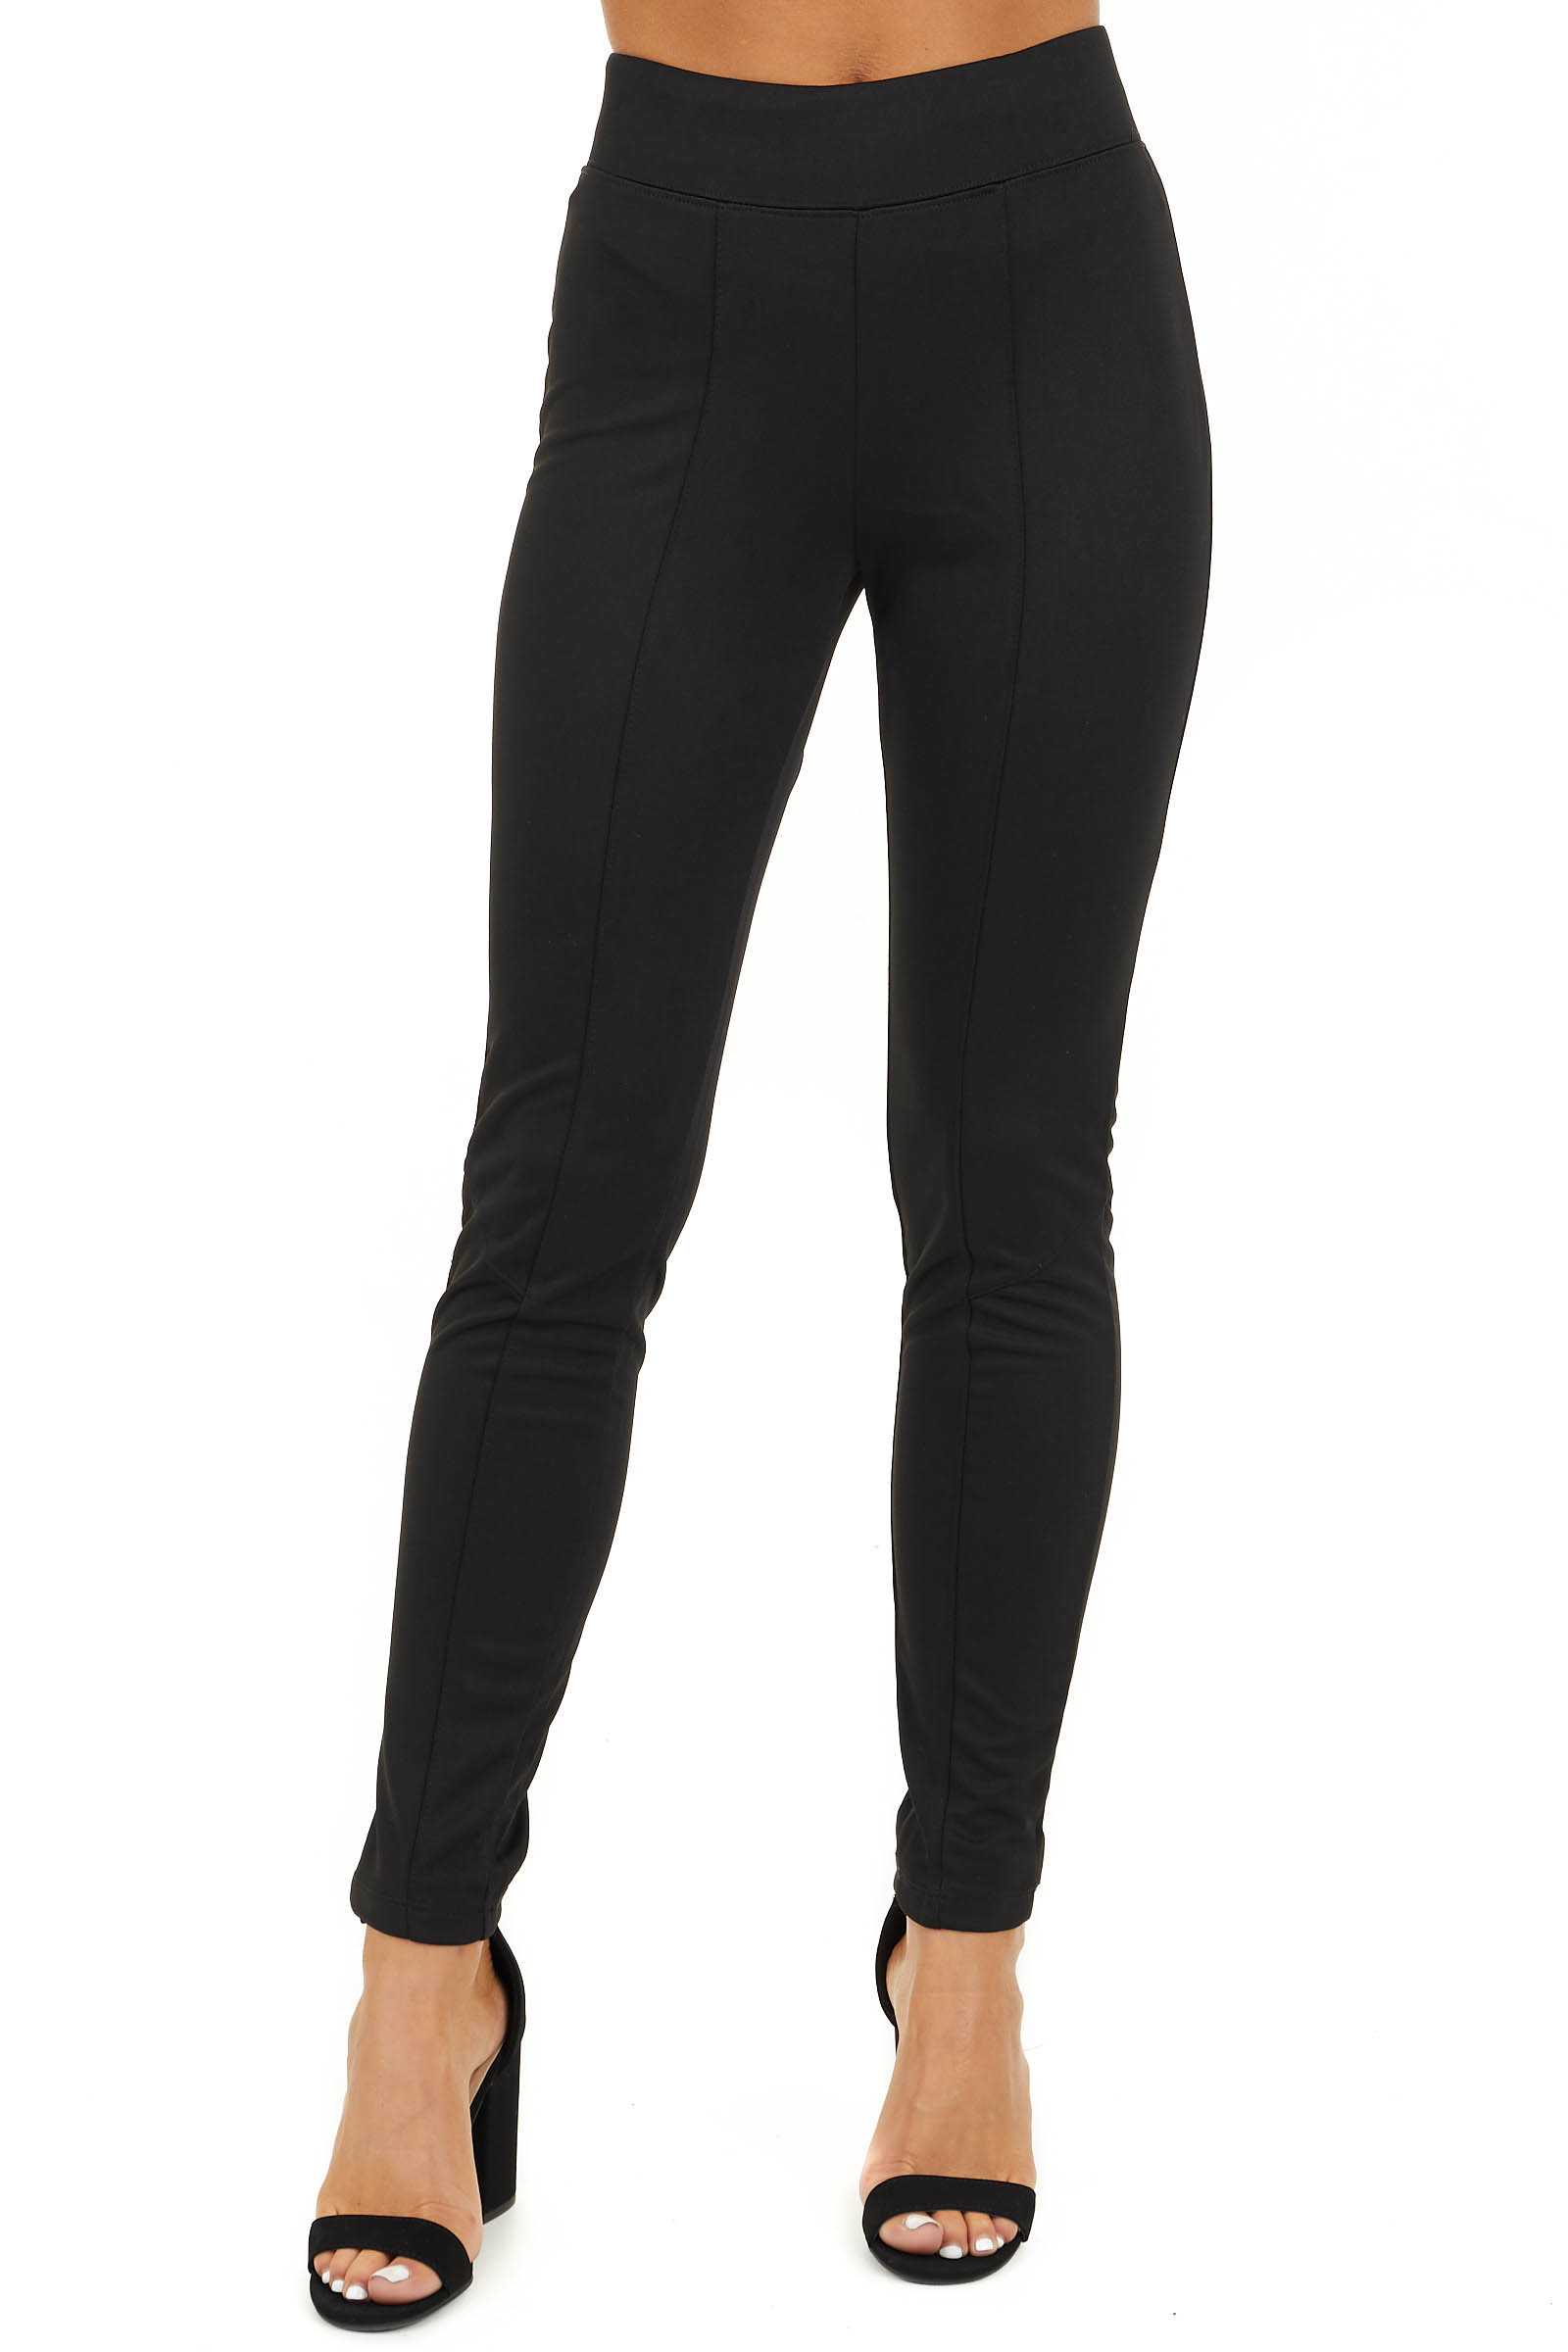 Black High Waisted Leggings with Elastic Waistband front view